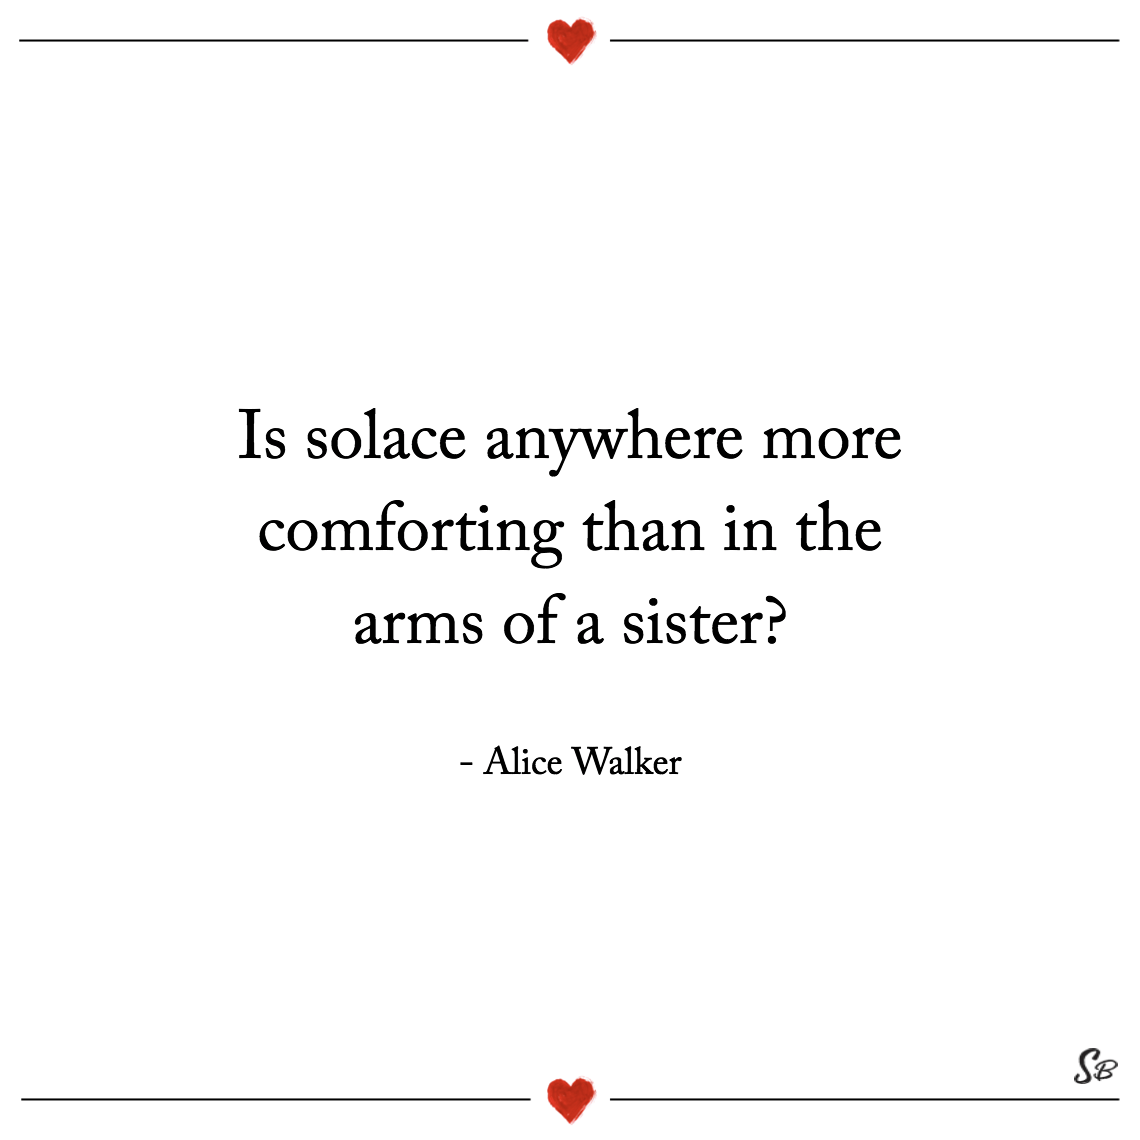 Is solace anywhere more comforting than in the arms of a sister alice walker